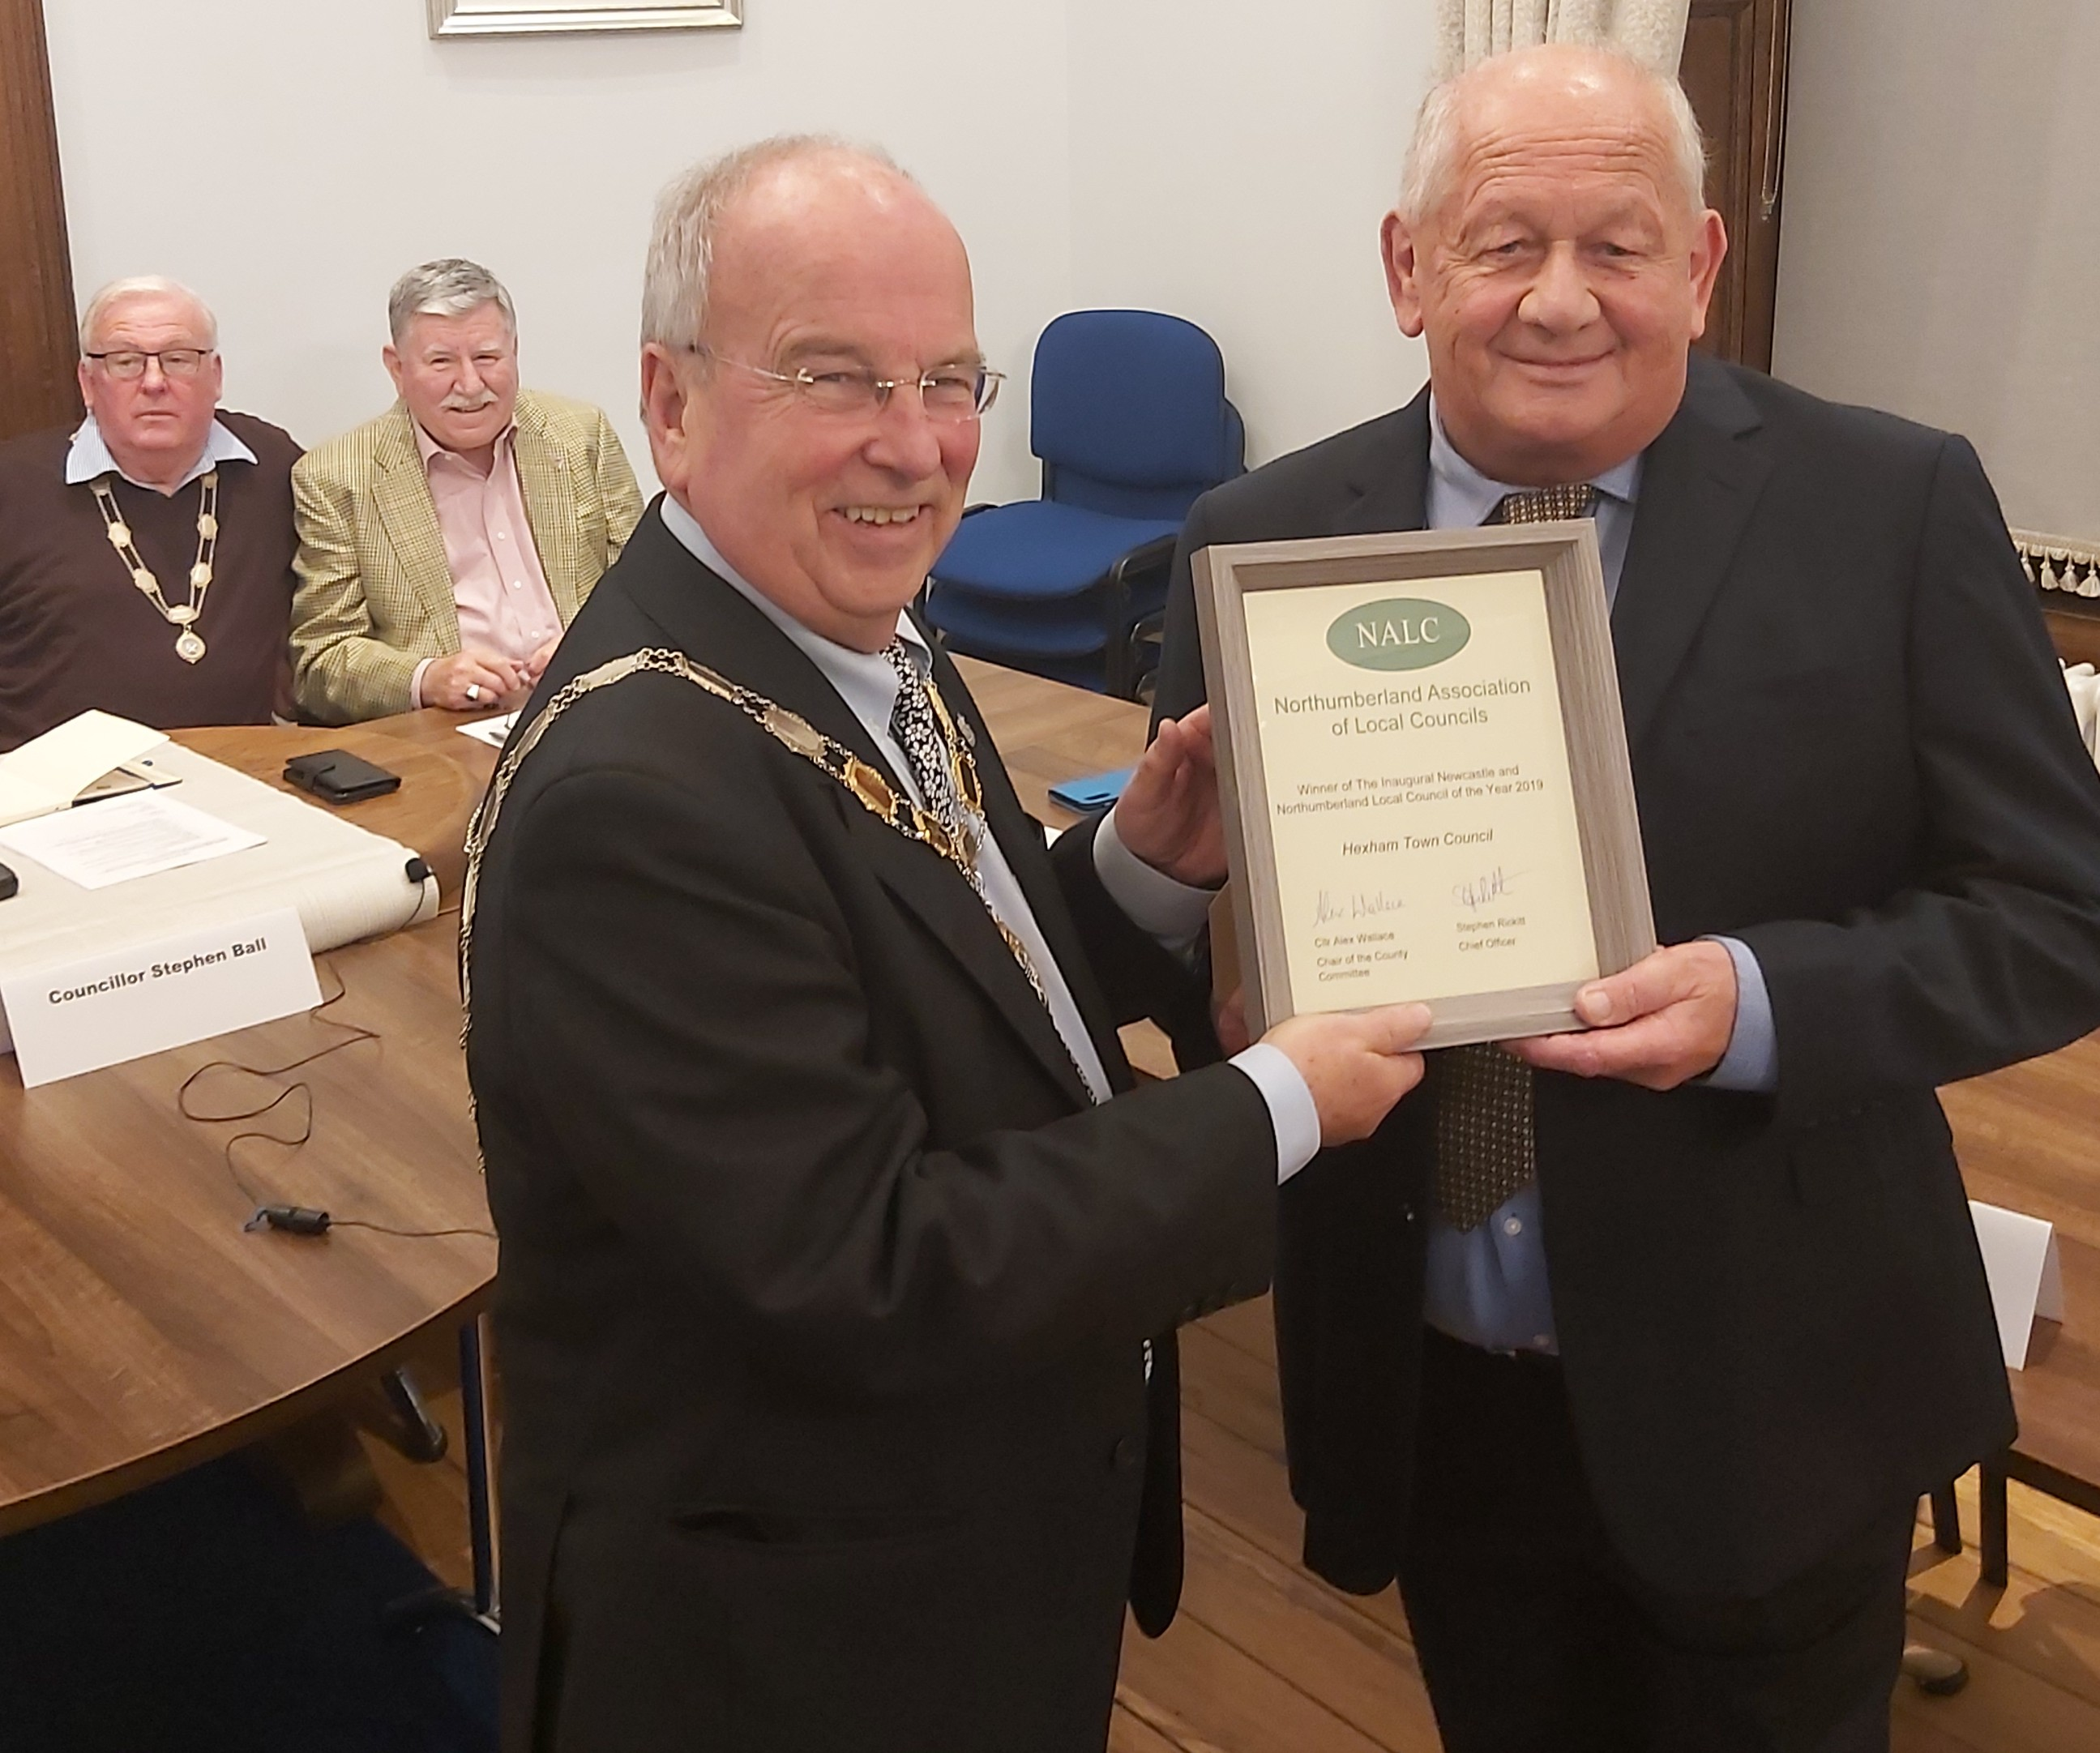 Council of the Year Award